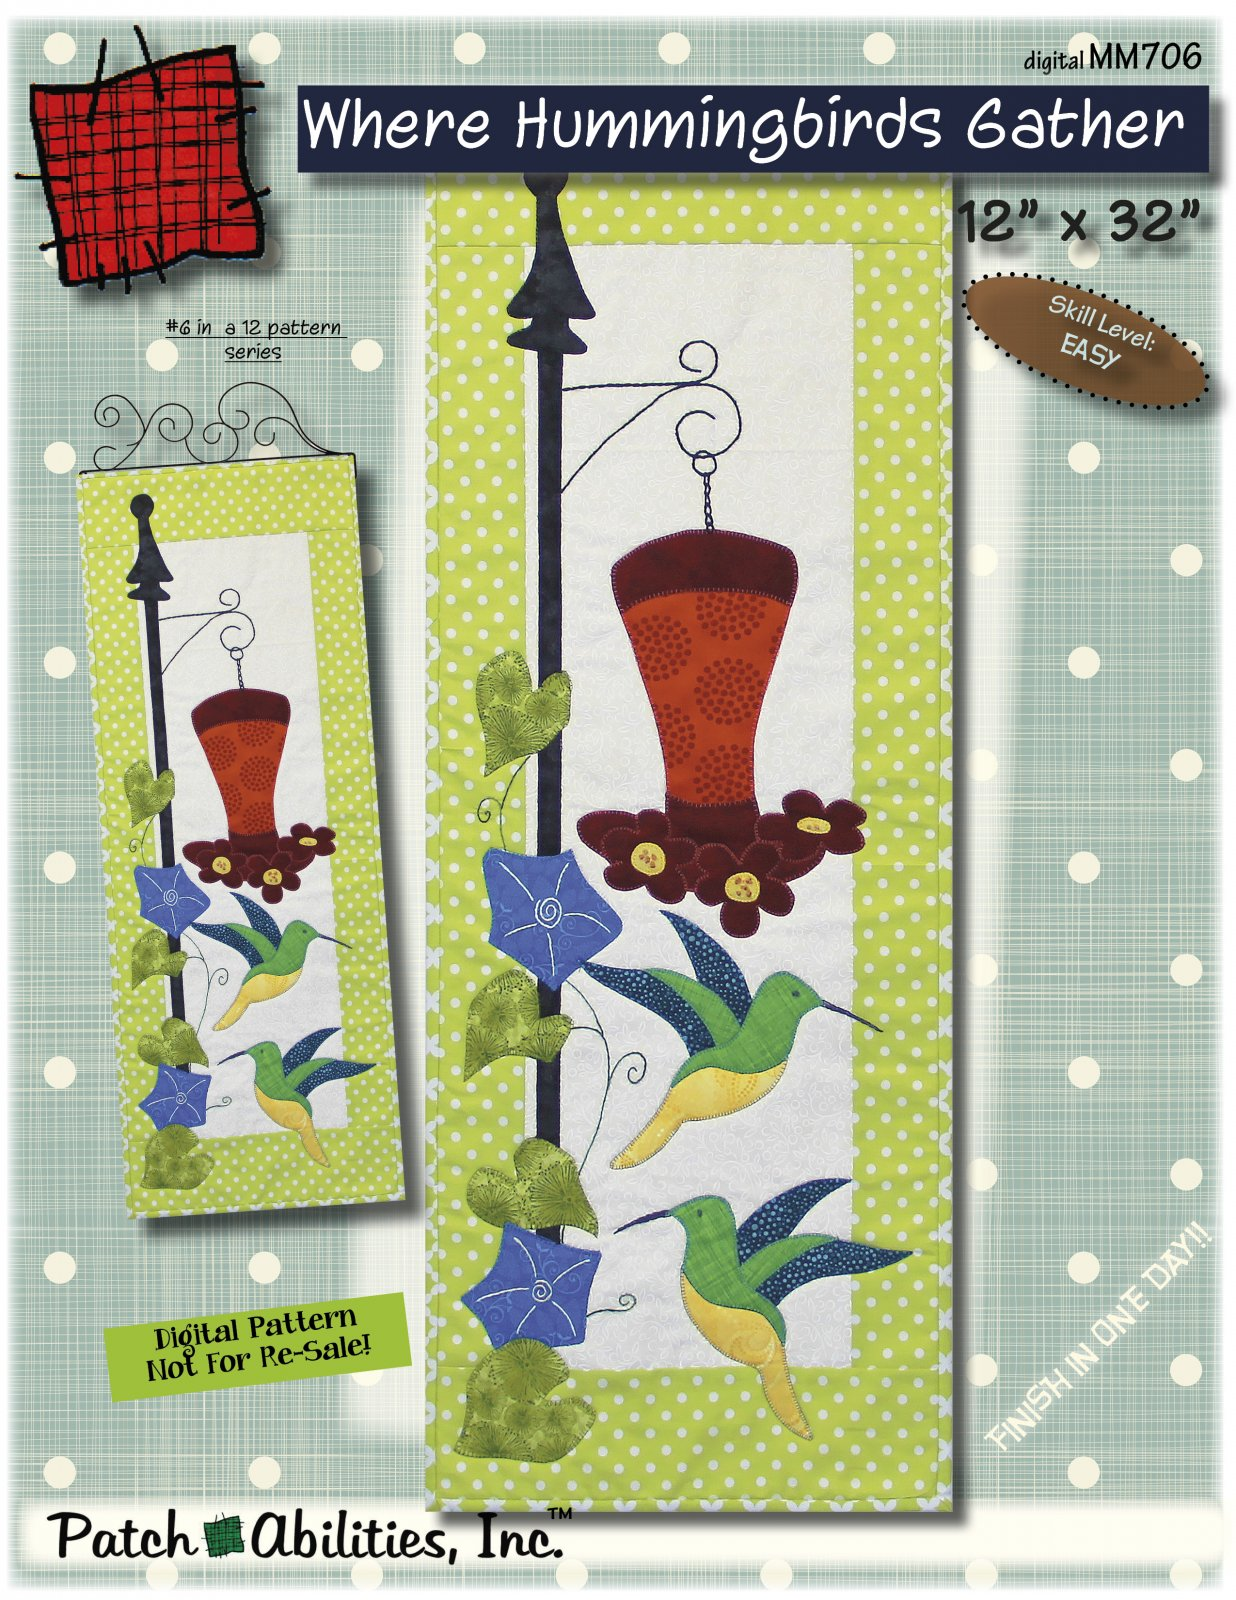 MM706 Where Hummingbirds Gather DIGITAL DOWNLOAD pattern